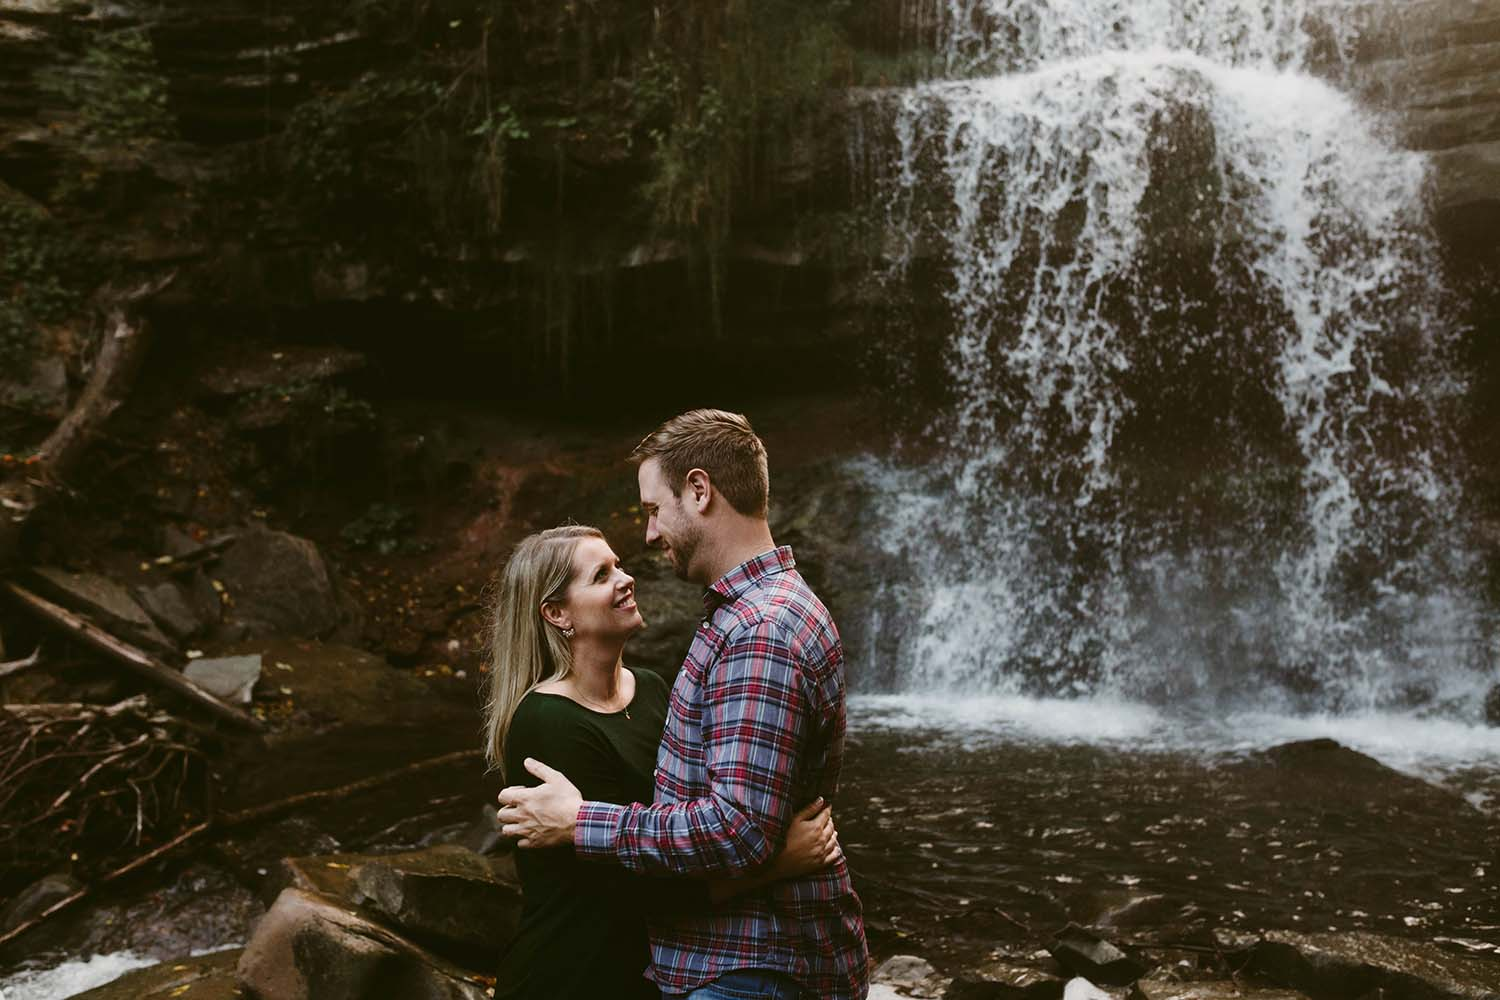 lifestyle-engagement-photos-waterfall-copperred-photography.jpg